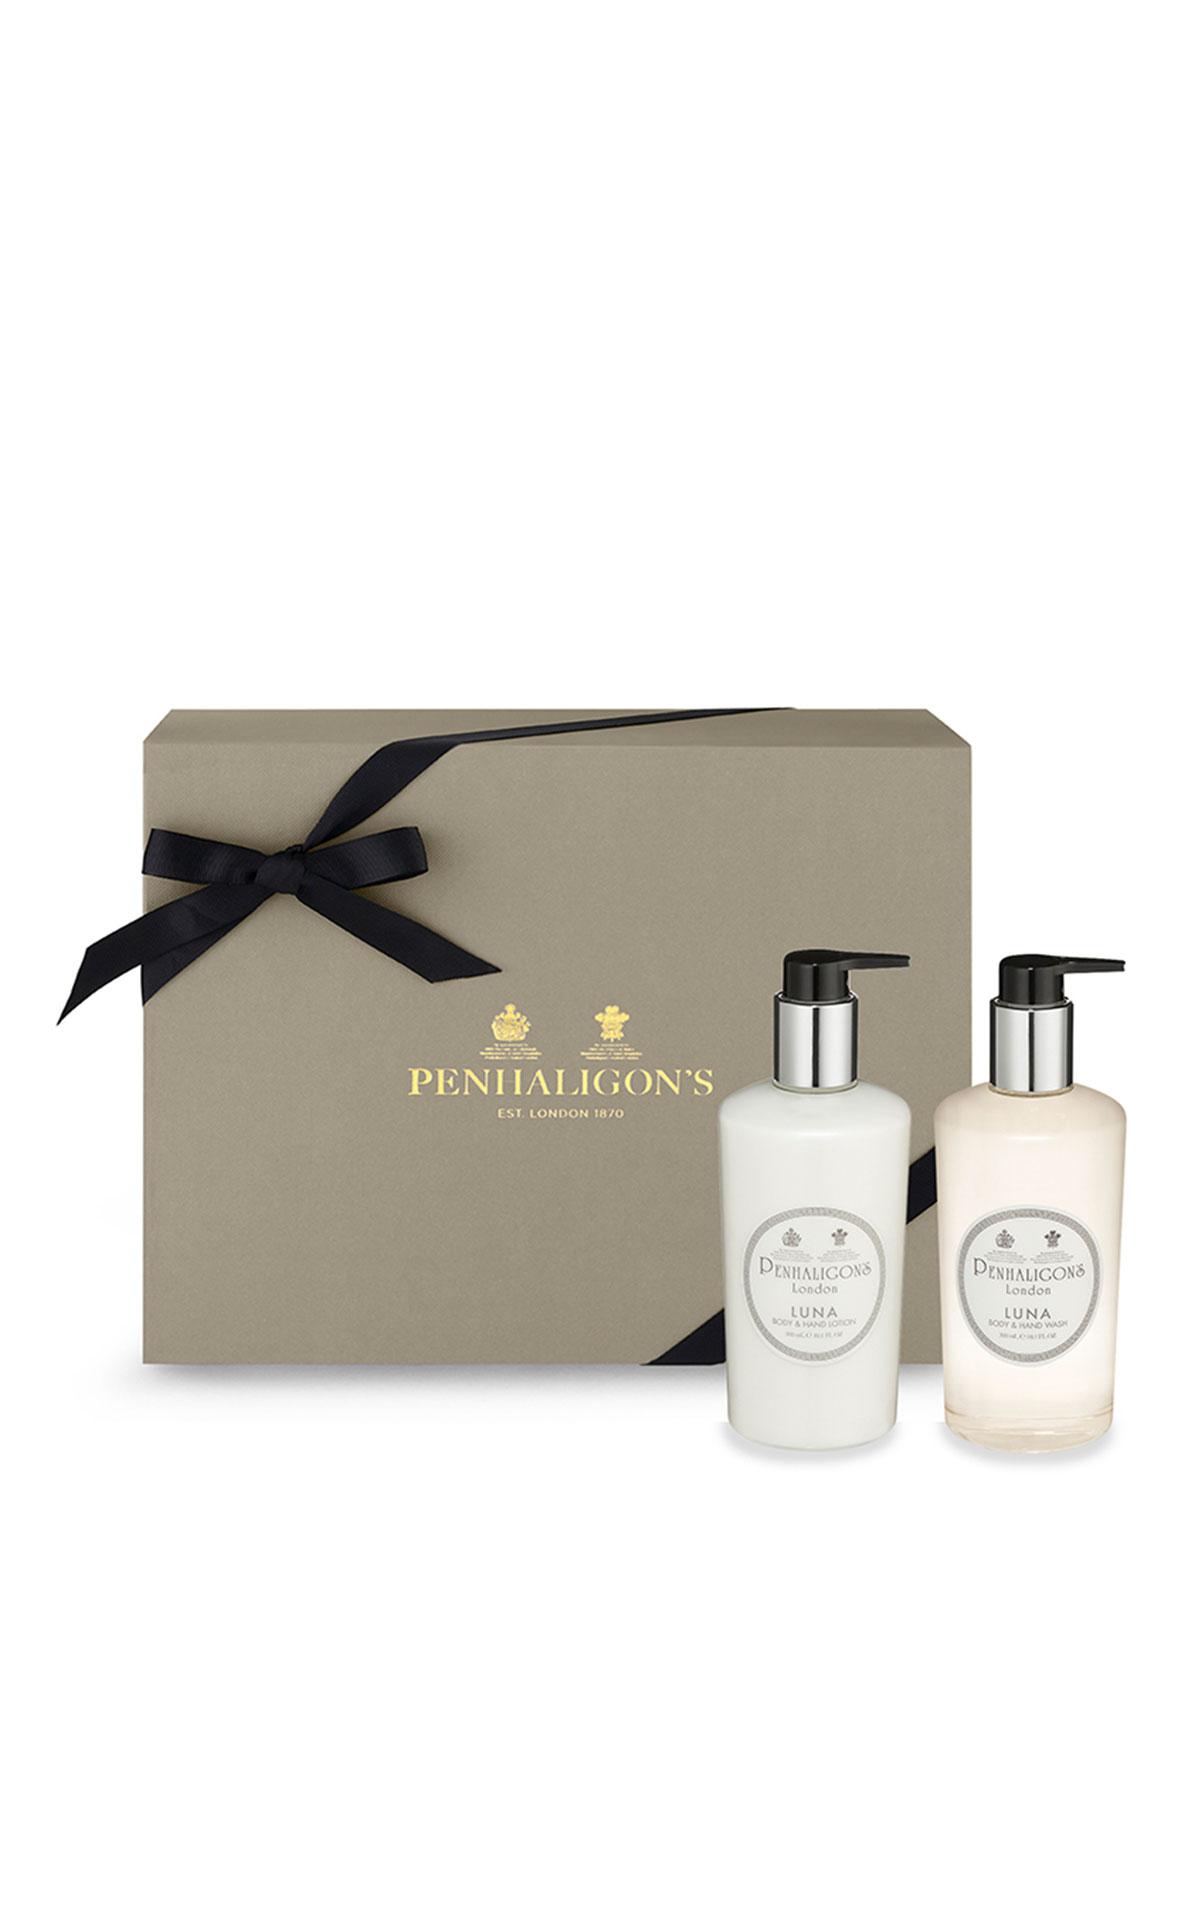 Penhaligon's Luna hand and body wash and hand and body Lotion from Bicester Village